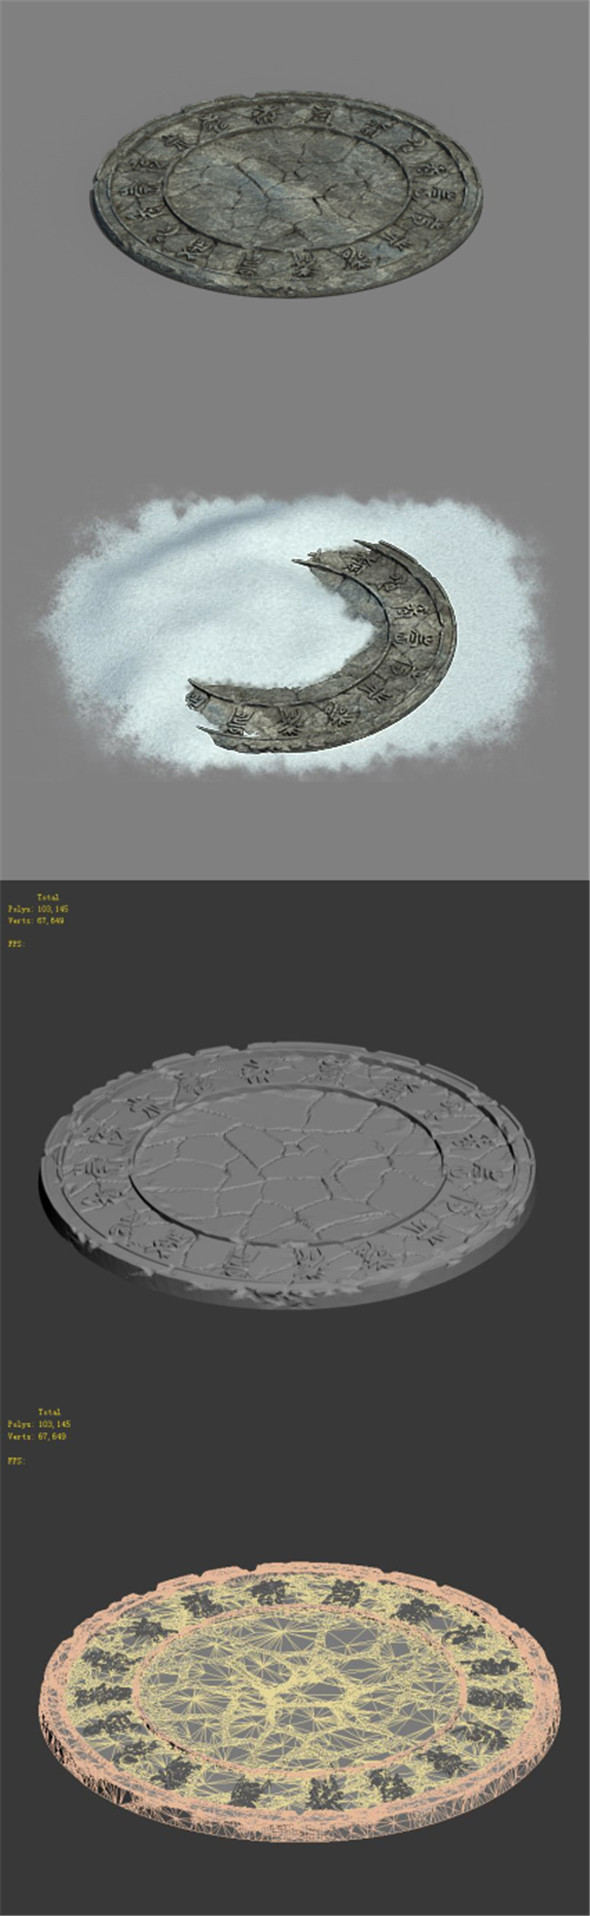 Zhaoshan - relics disc pattern - 3DOcean Item for Sale